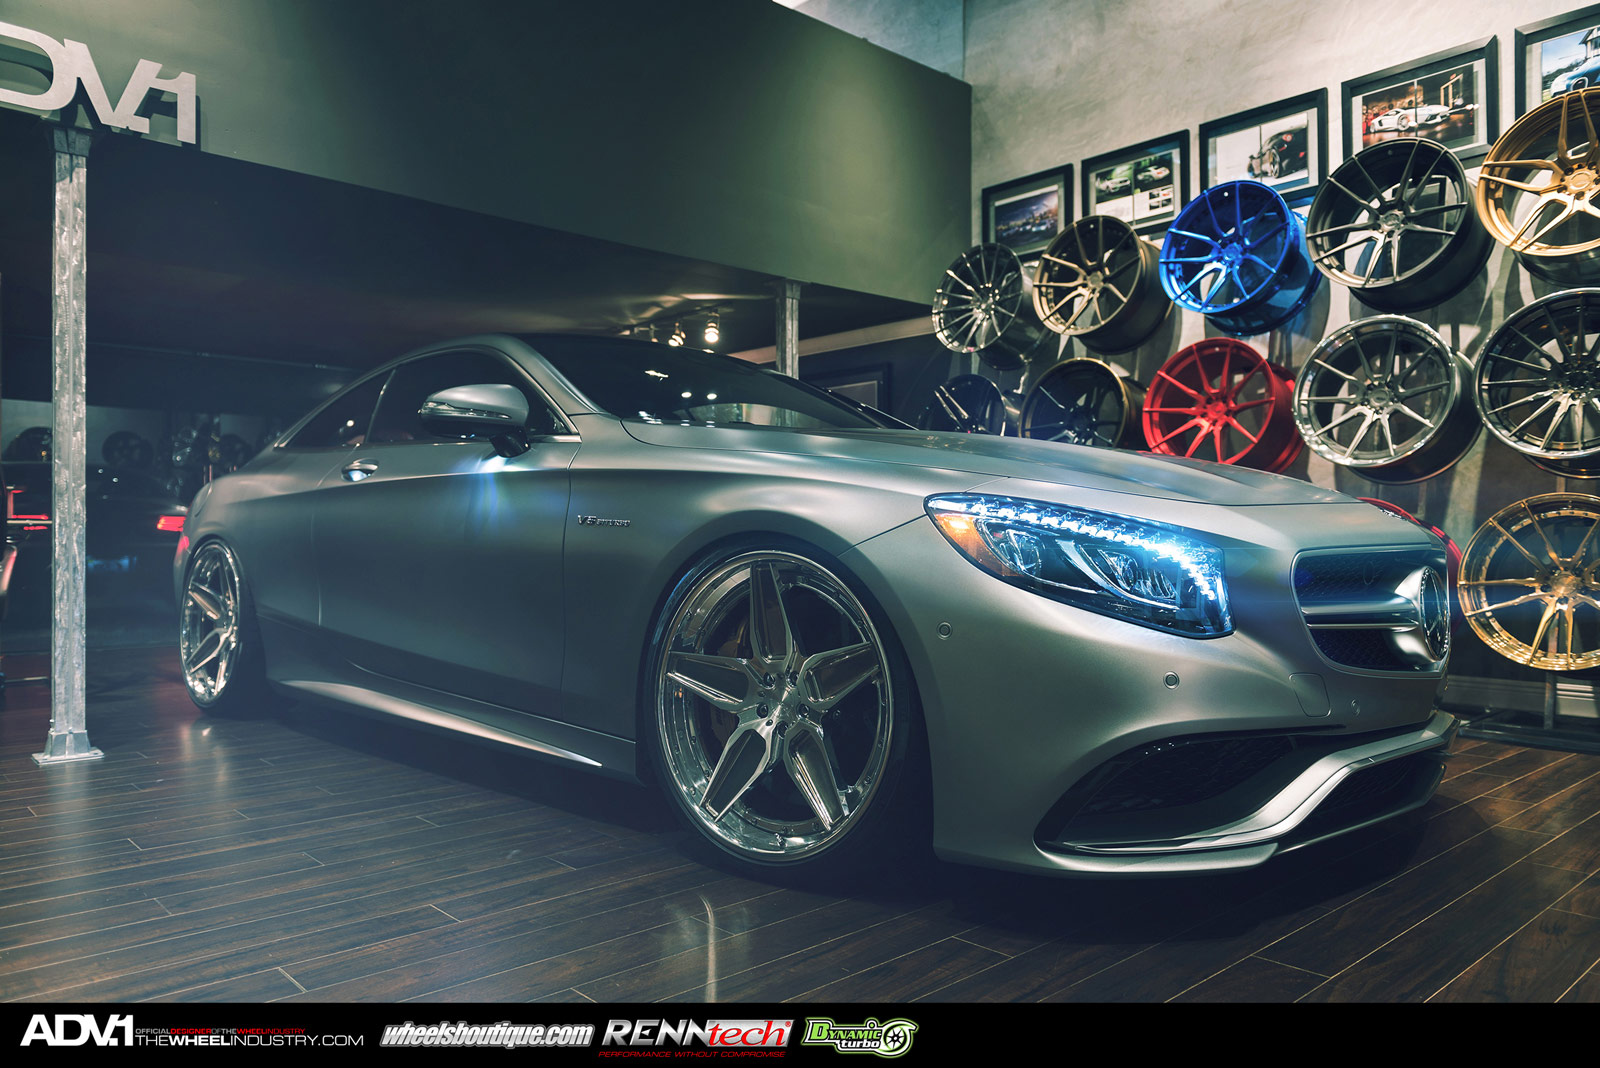 Matte grey mercedes benz s63 amg coupe with adv 1 wheels for Matte mercedes benz